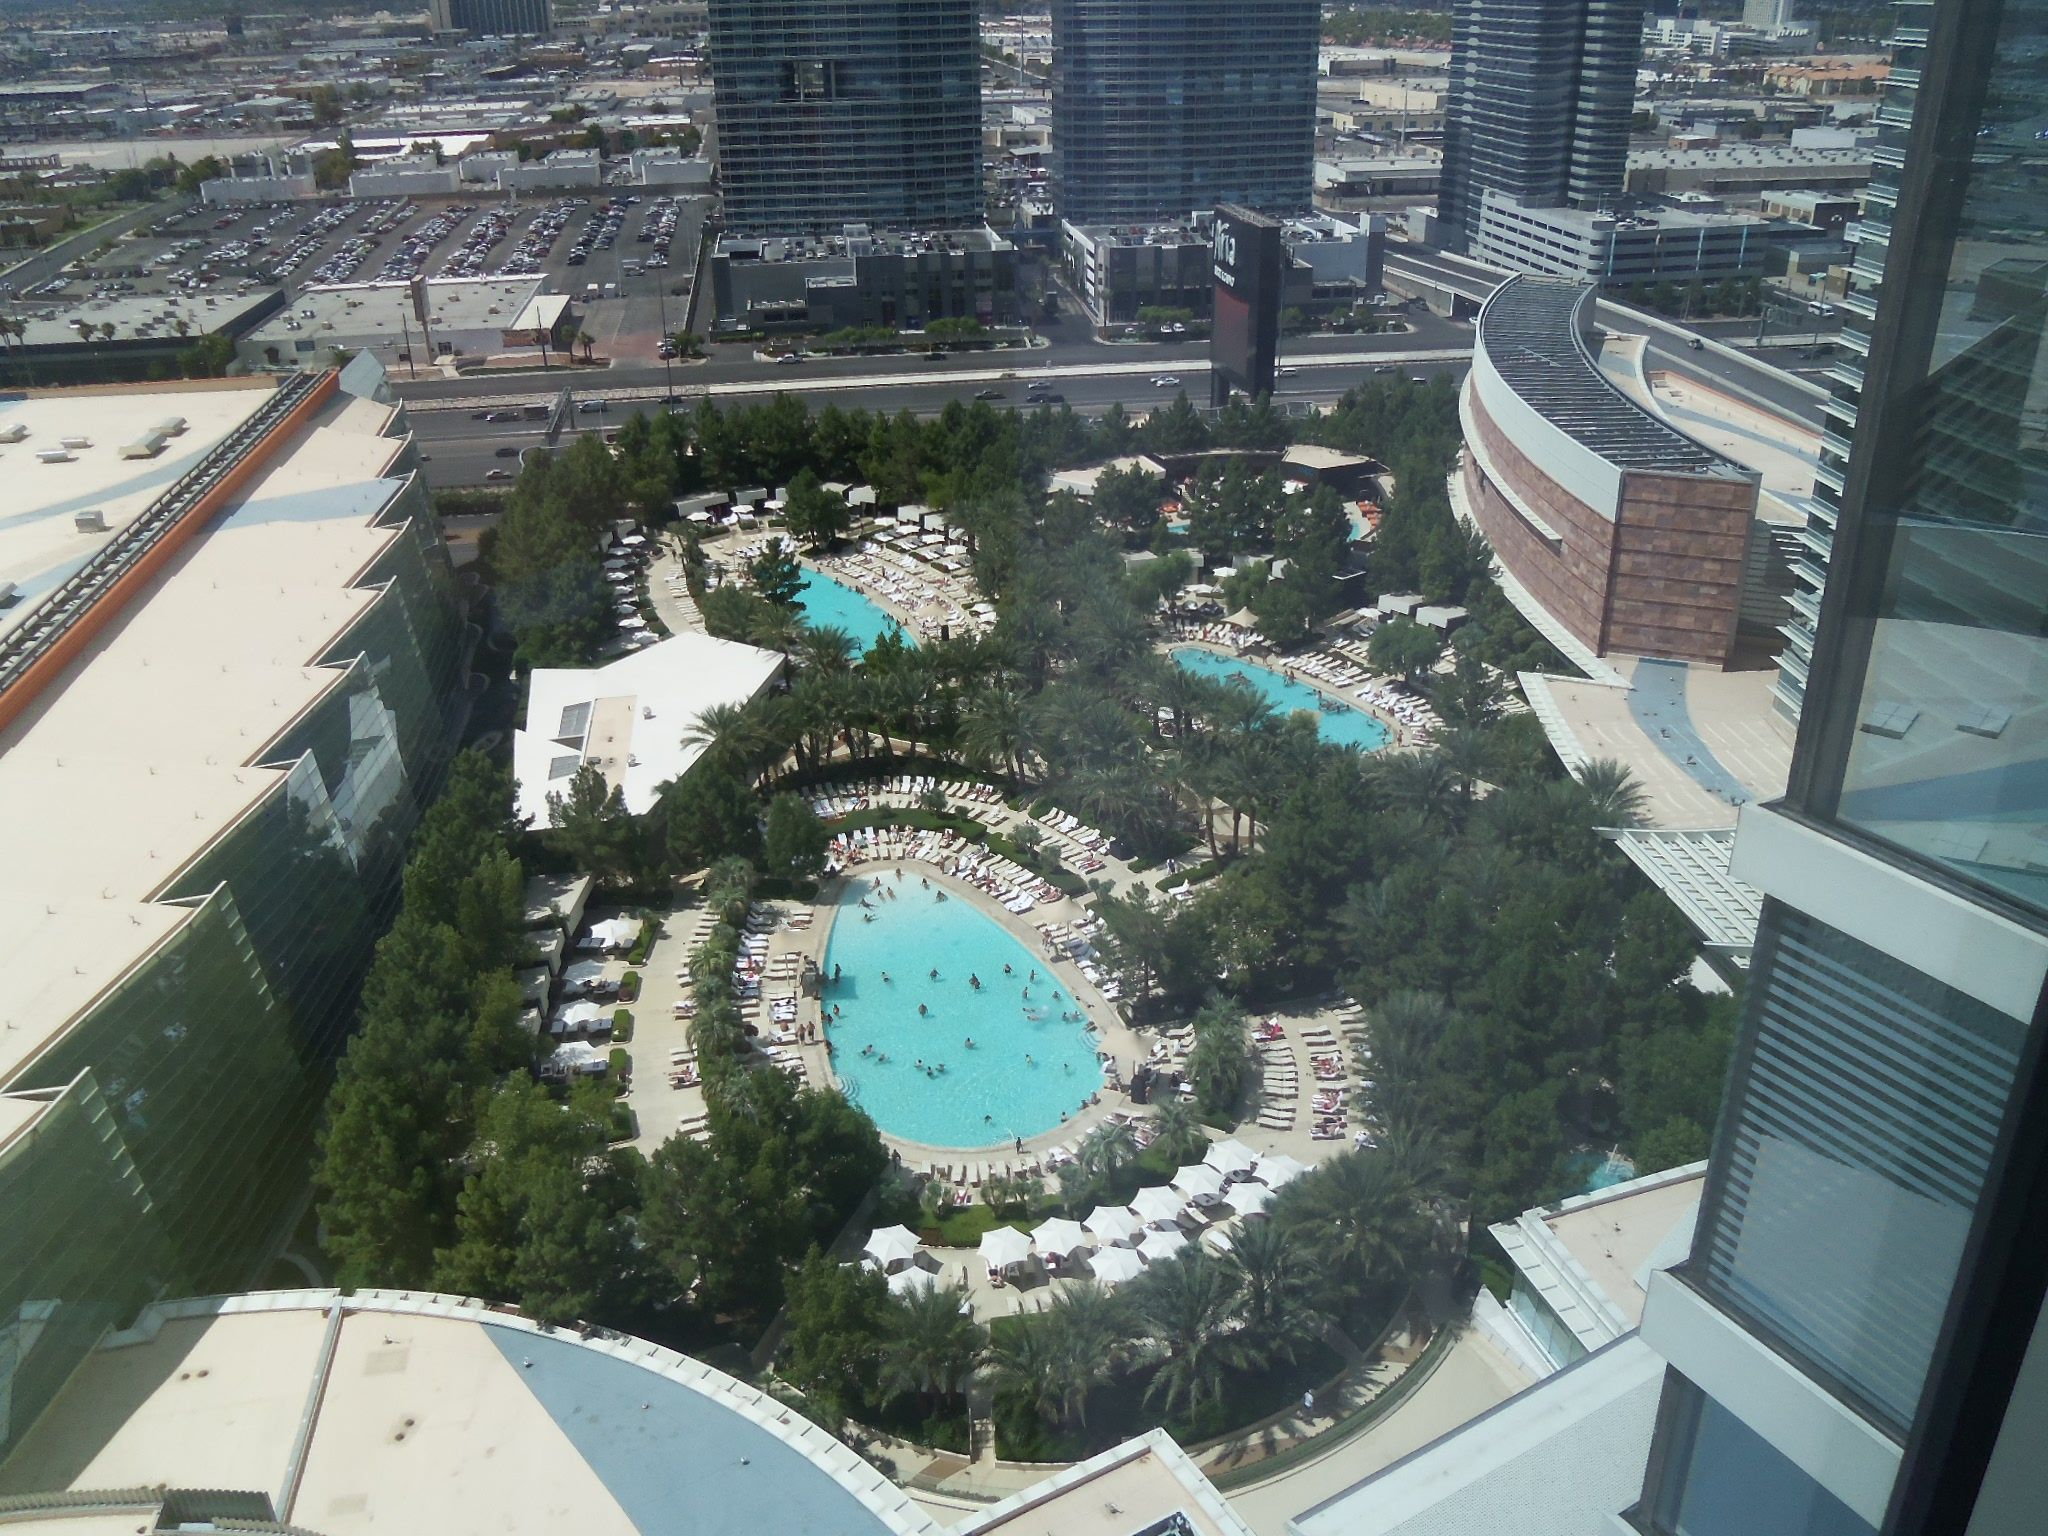 Aria Pool Area Las Vegas More Pools Not Shown Pool Area How To Memorize Things Places